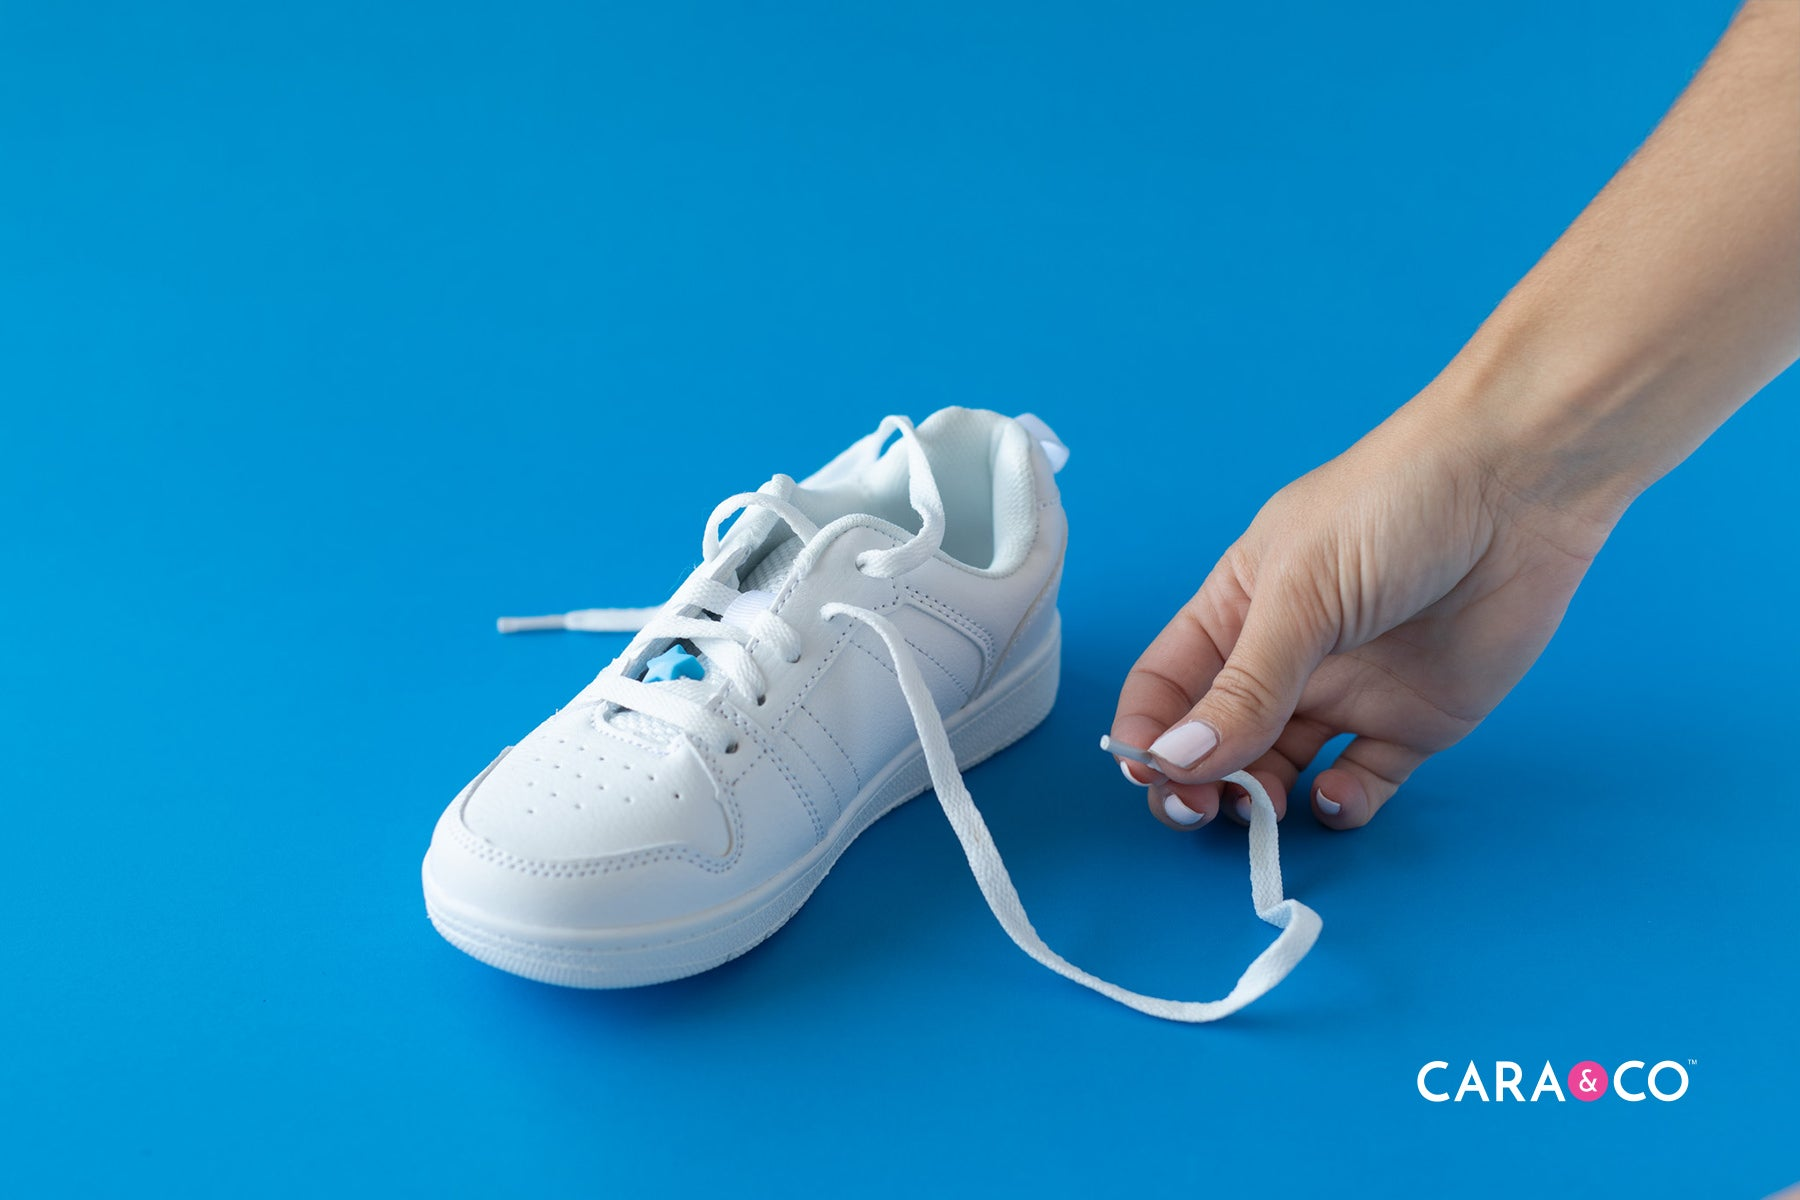 Back to school in style! - Shoelace bling!